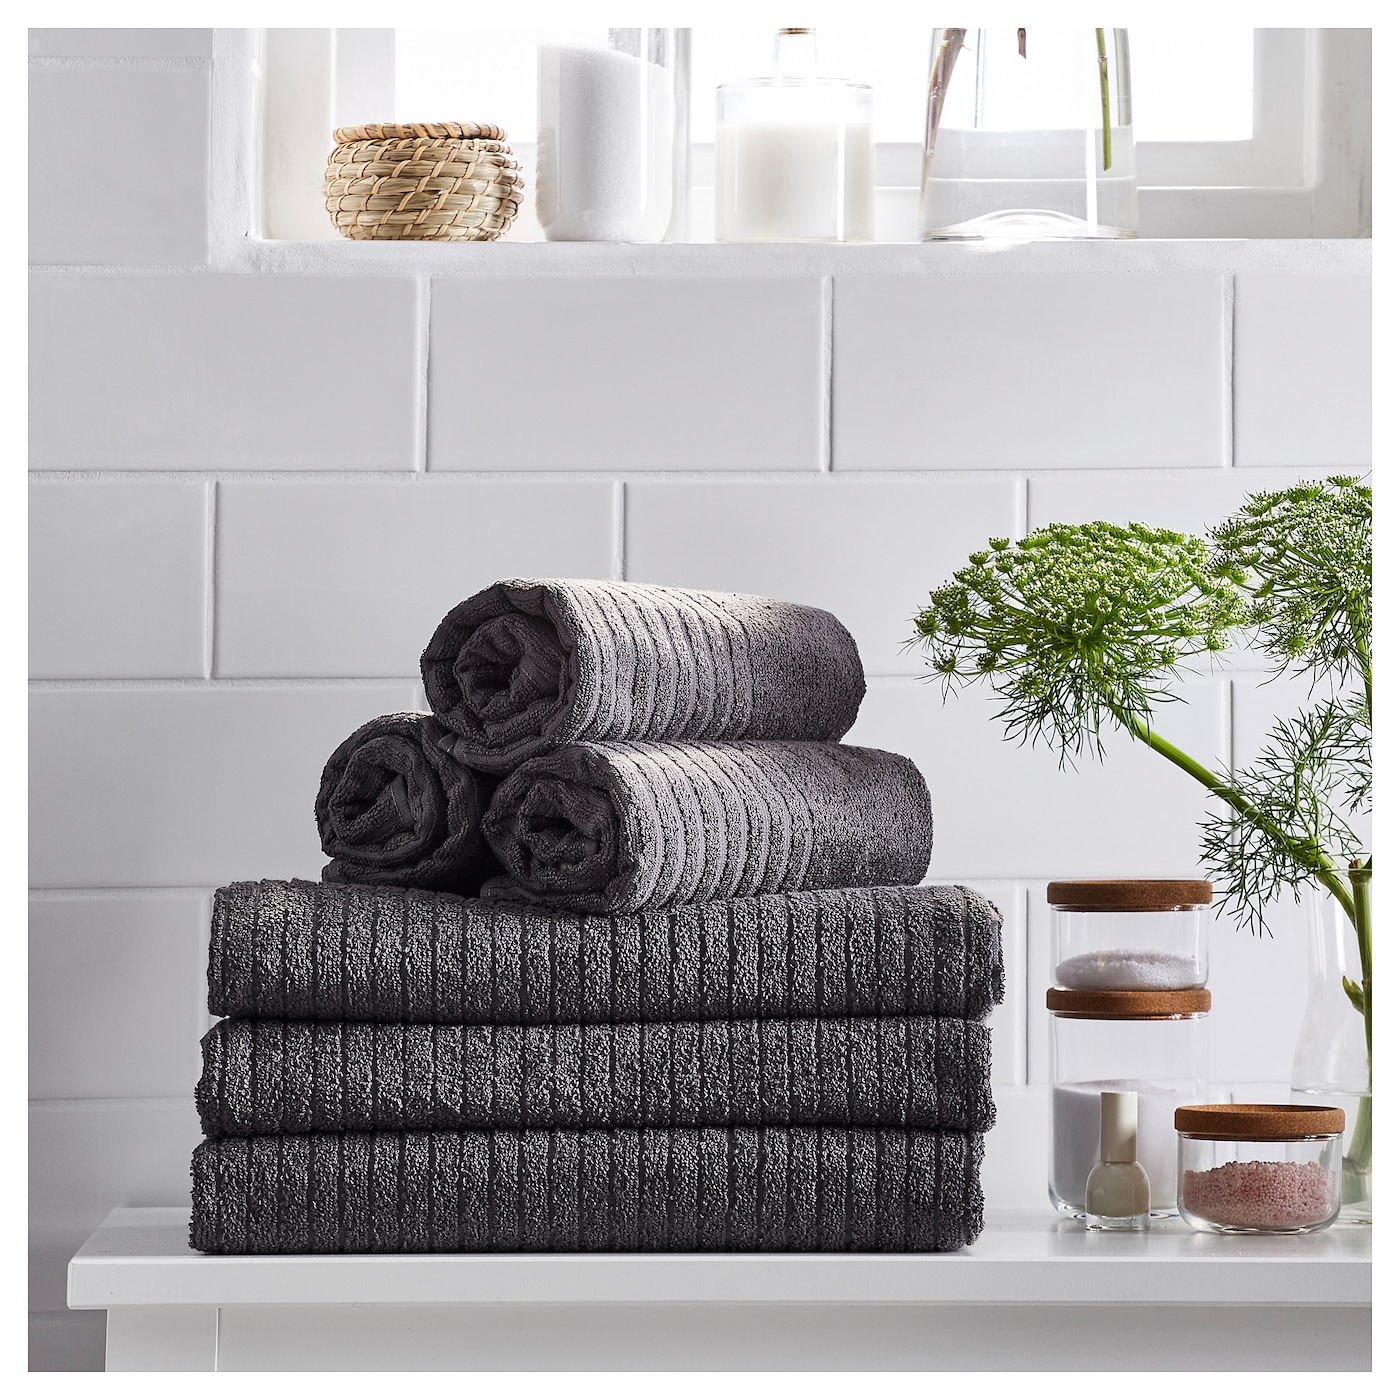 IKEA VÅGSJÖN hand towel The long, fine fibres of combed cotton create a soft and durable towel.